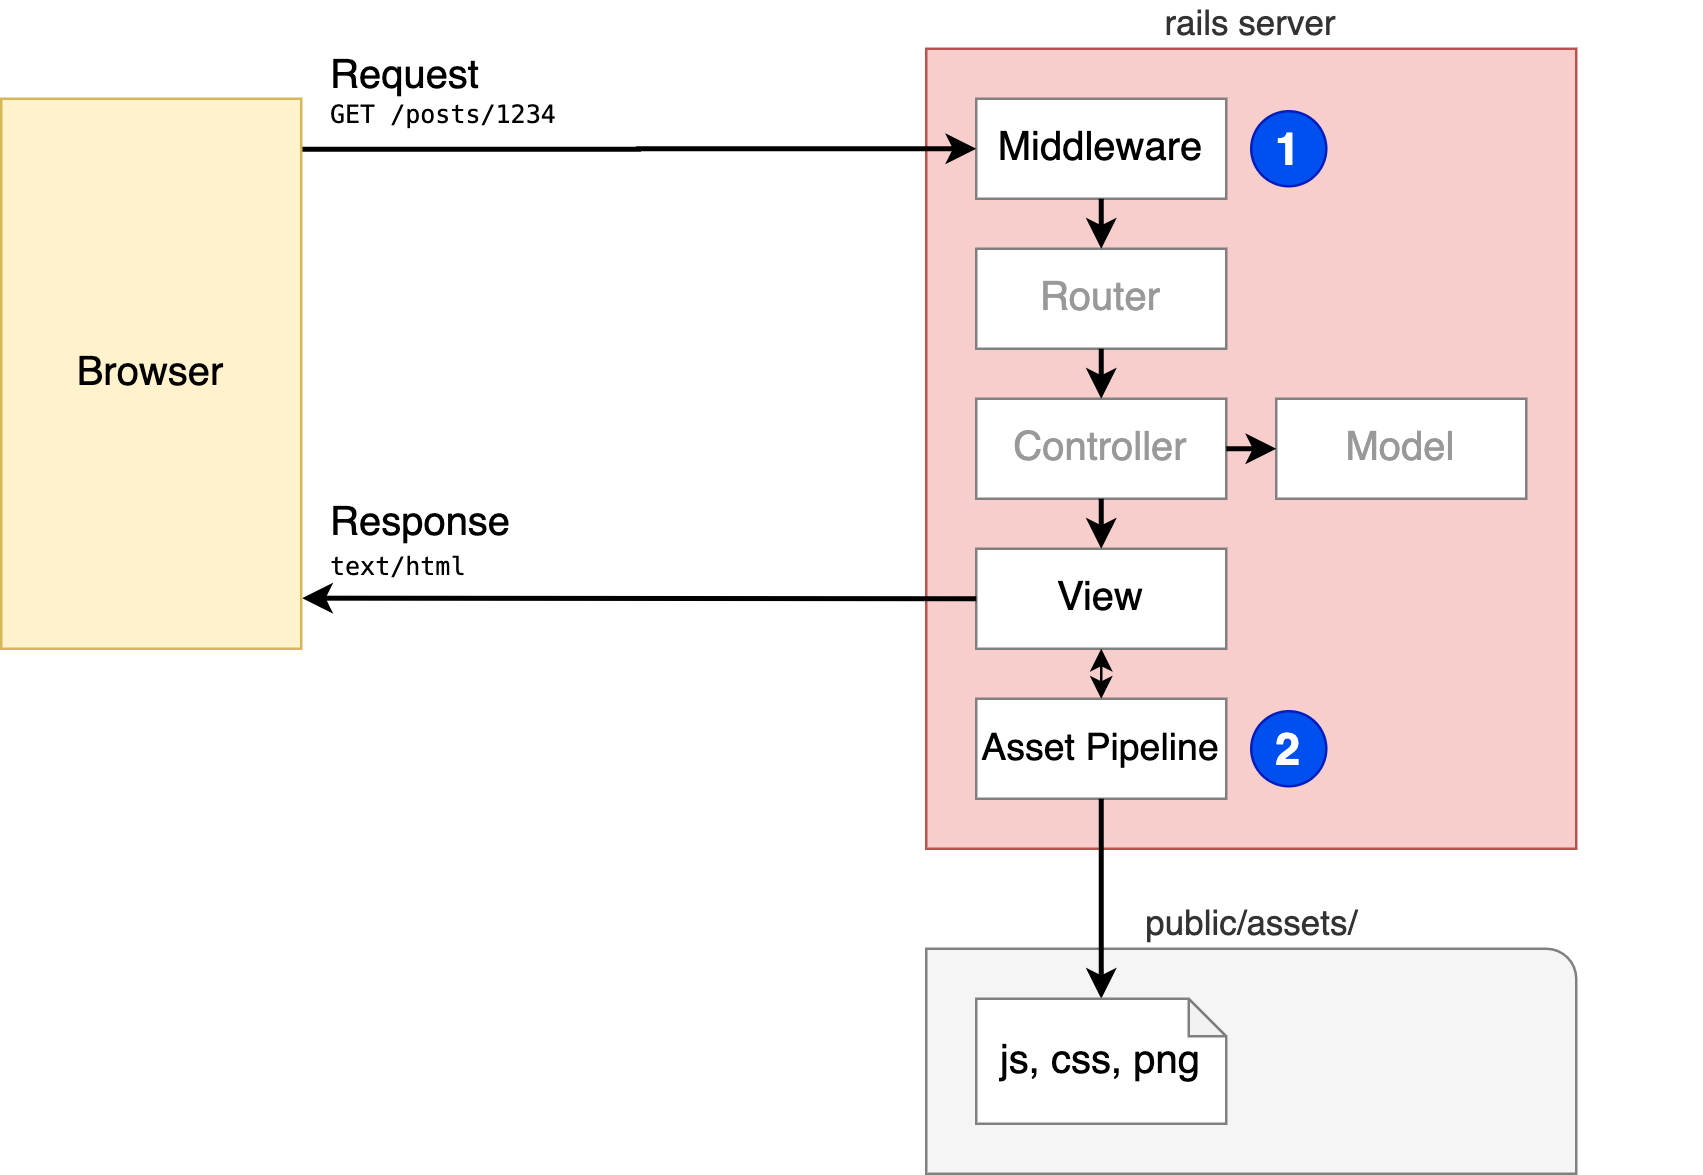 Rails request with the asset pipeline